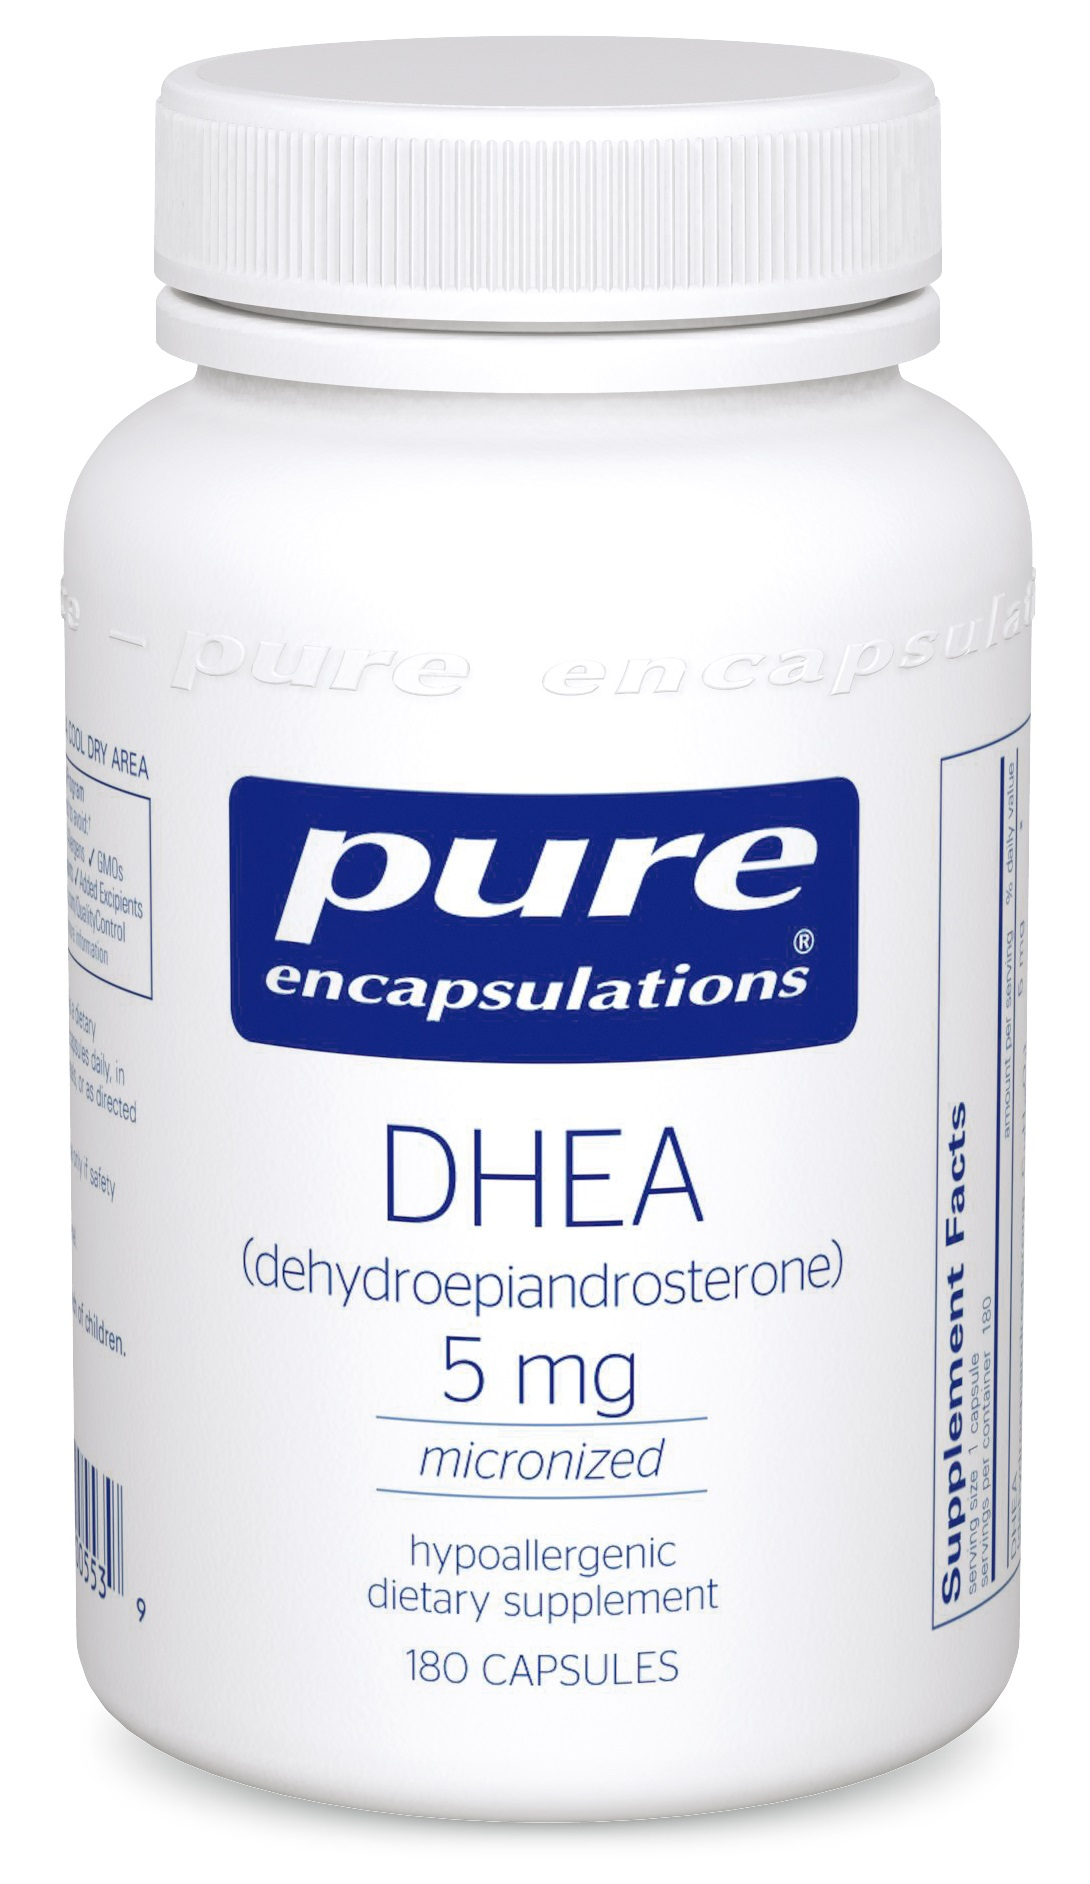 Pure Encapsulations DHEA 5 mg